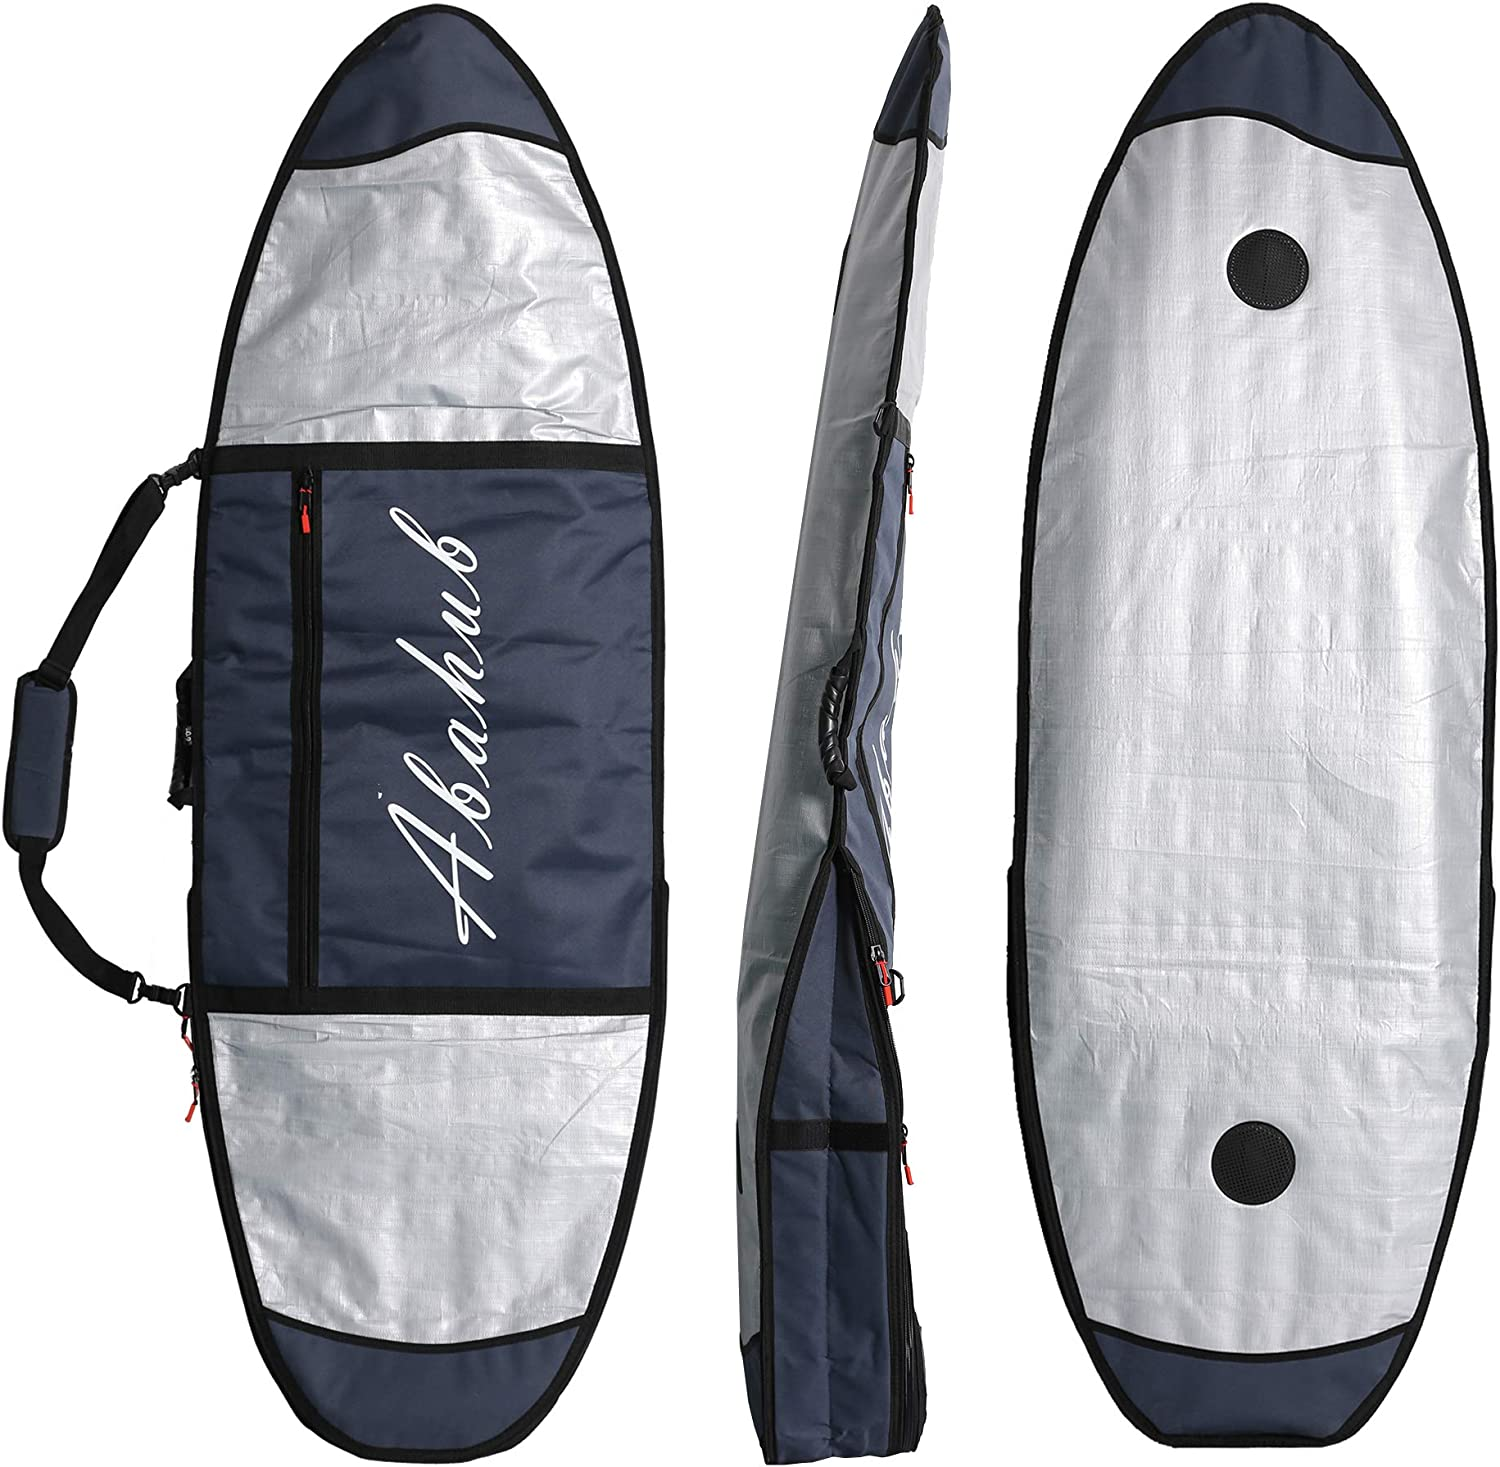 96 SUP Cover Abahub Premium Surfboard Travel Bag 60 90 Stand-up Paddle Board Carrying Bags for Outdoor 80 100 70 76 86 66